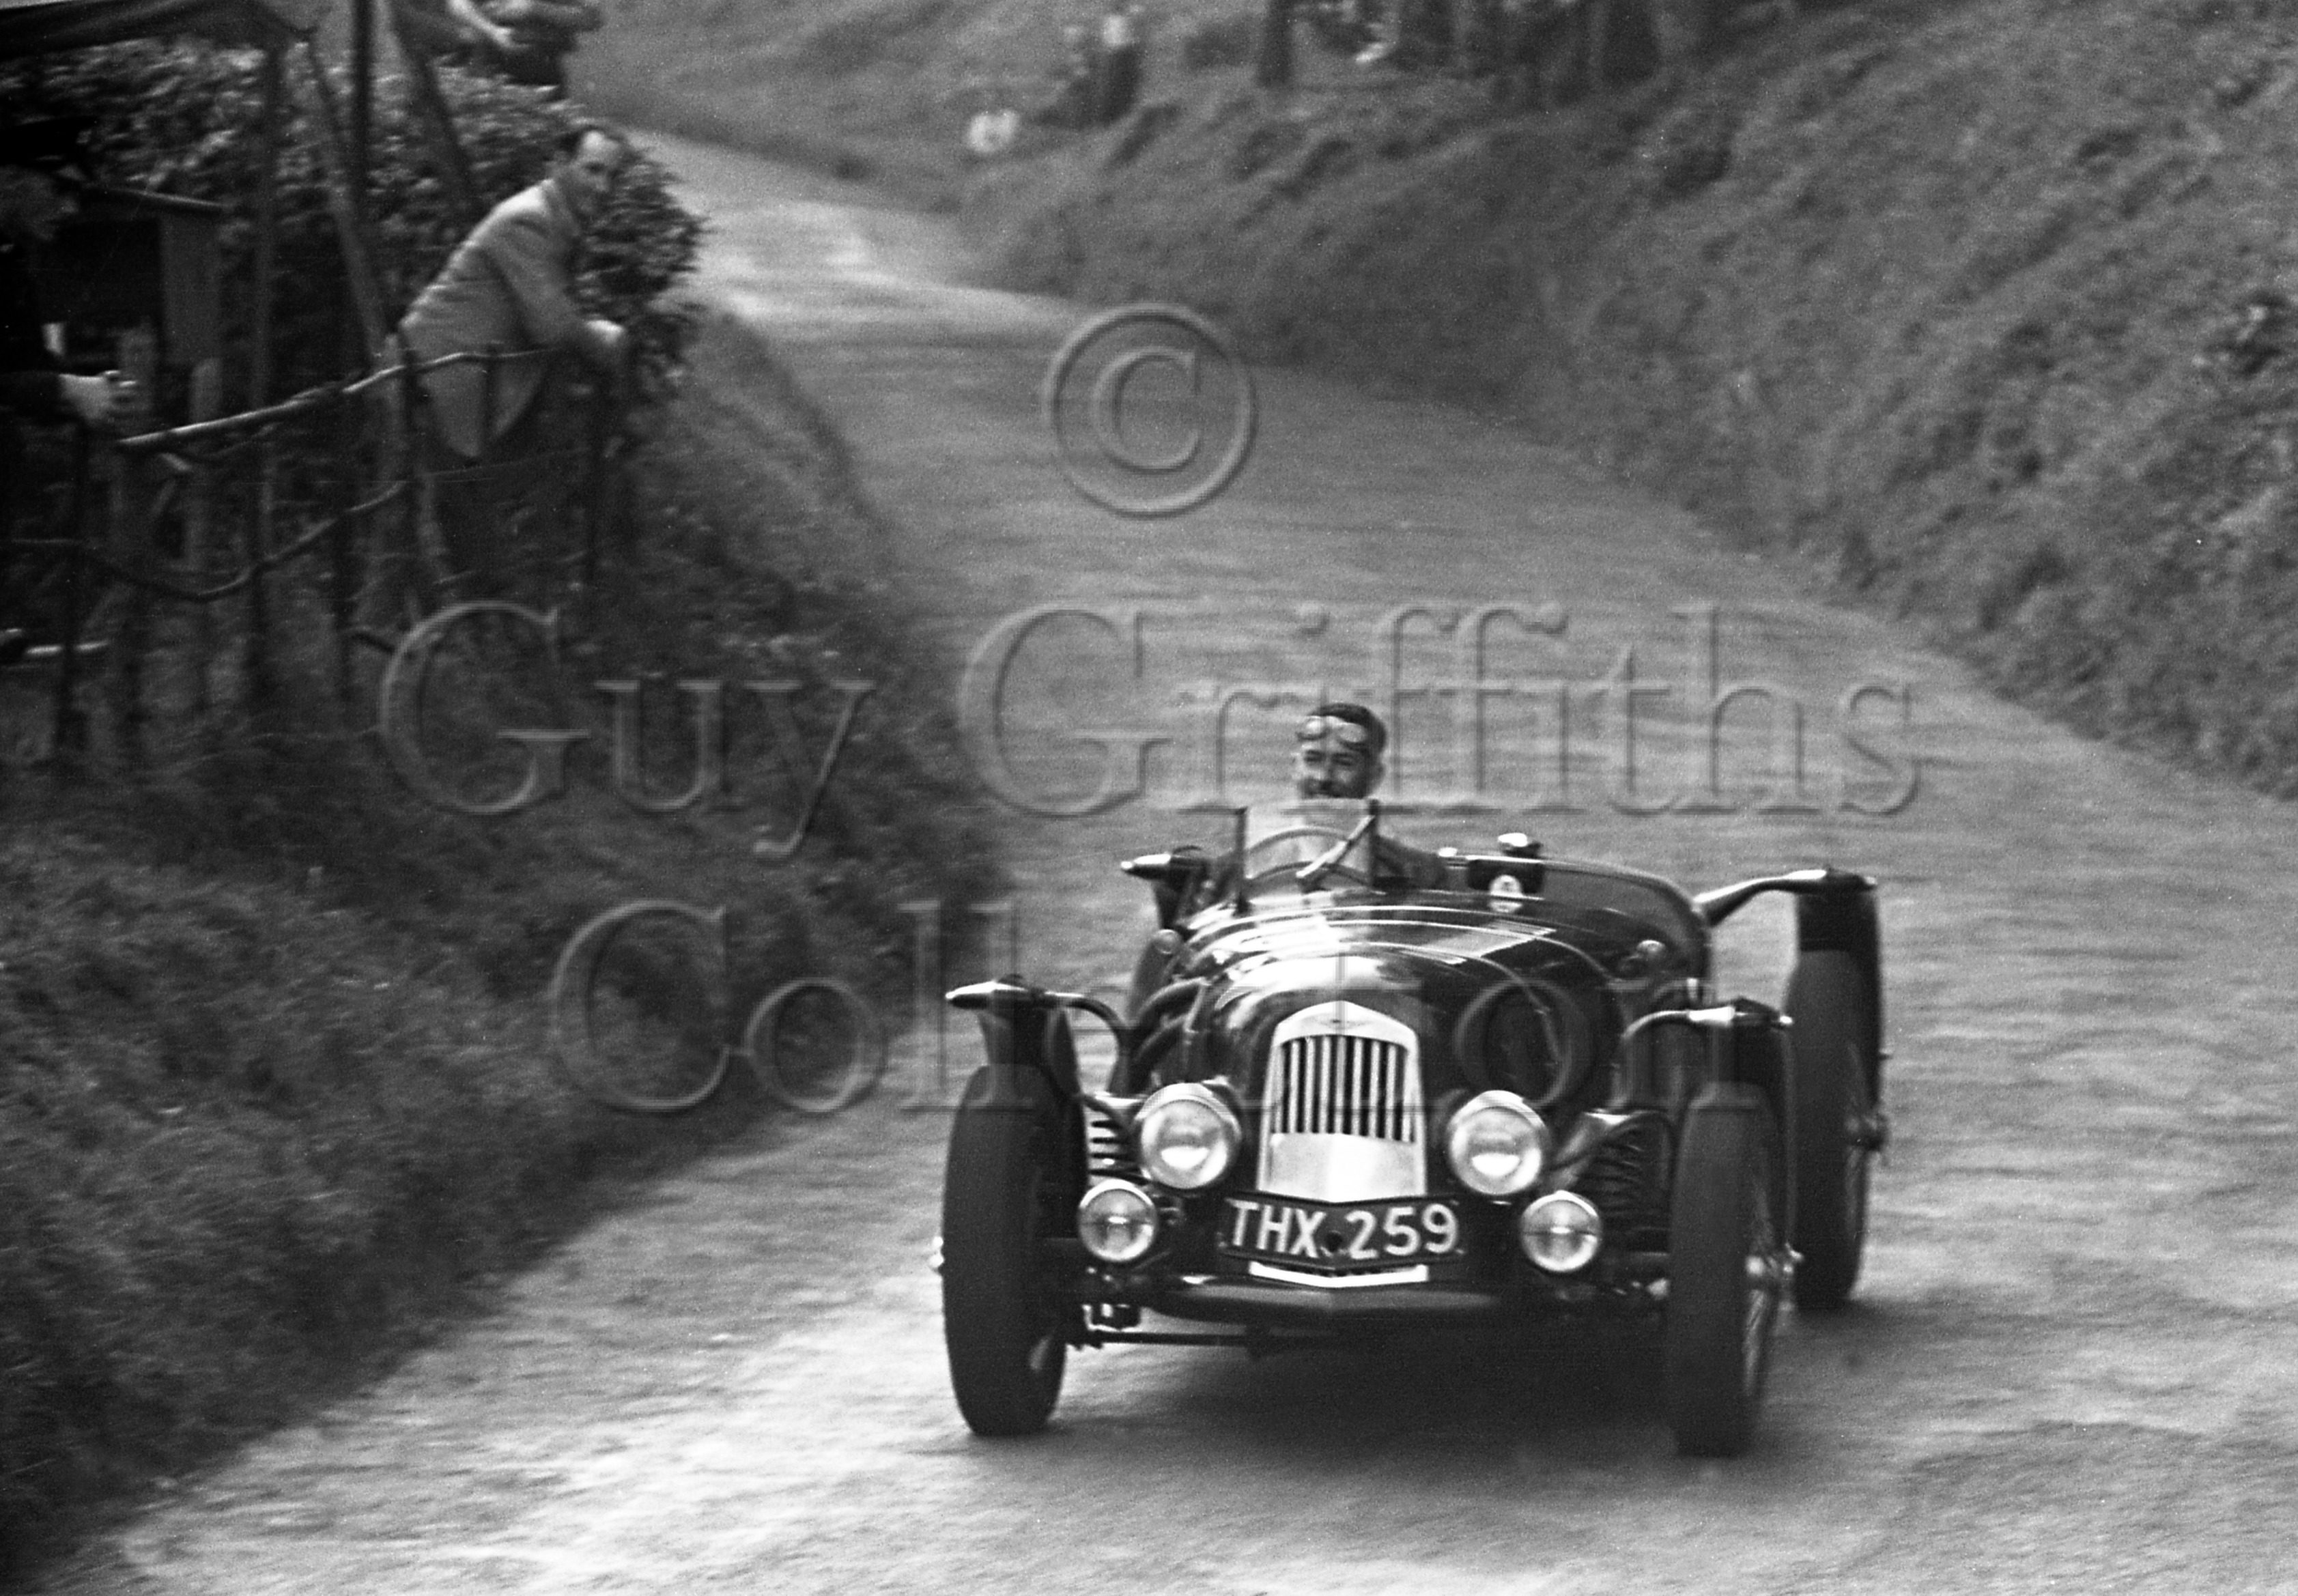 8-503–J-Horsfall–Aston-Martin–Shelsley–25-09-1948.jpg - The Guy Griffiths Collection